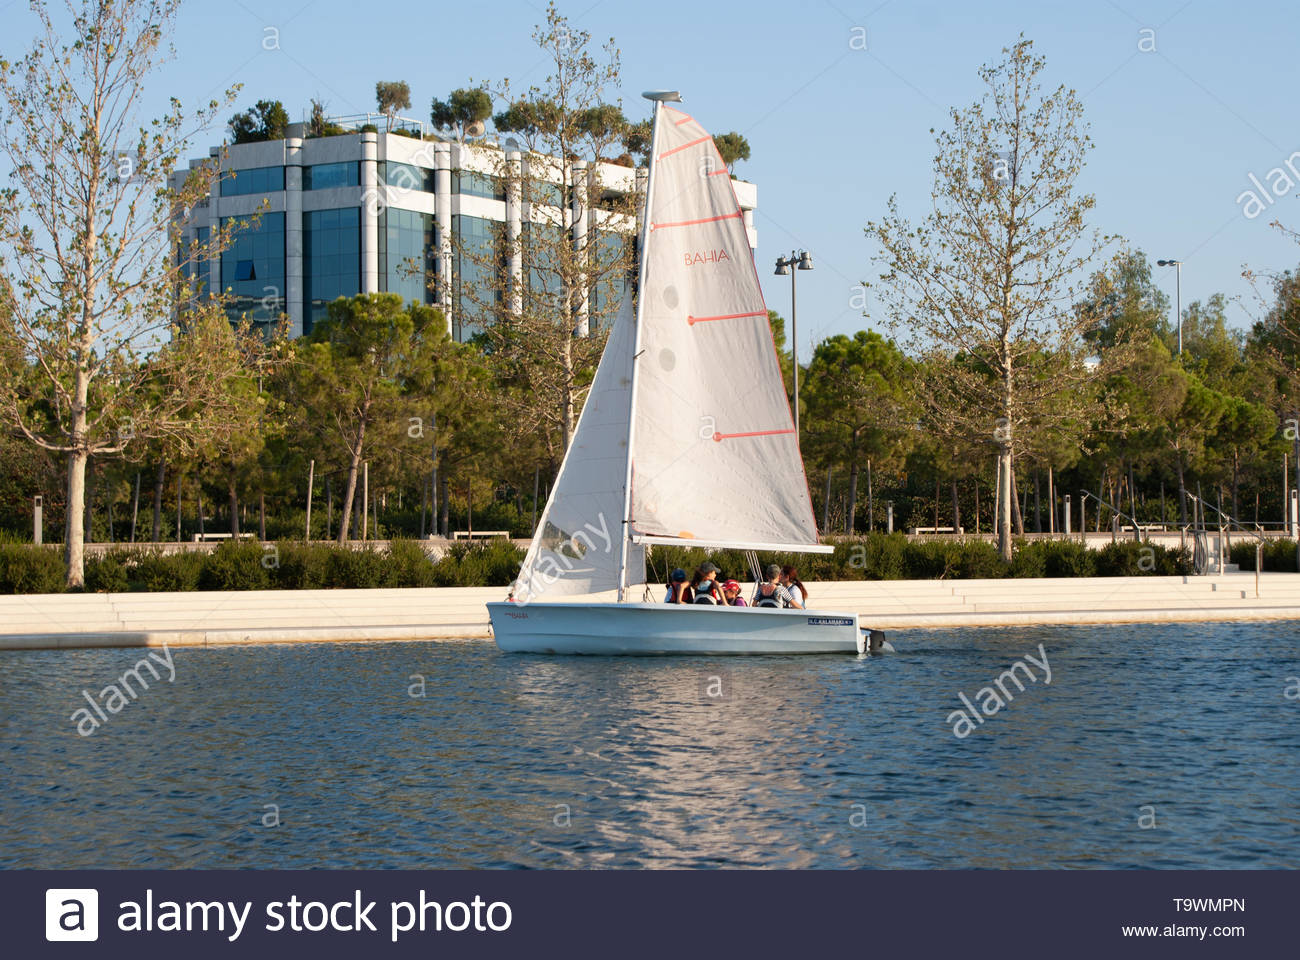 ATHENS, GREECE - AUGUST 2018- Kids enjoying sailing in city park canal - Stock Image